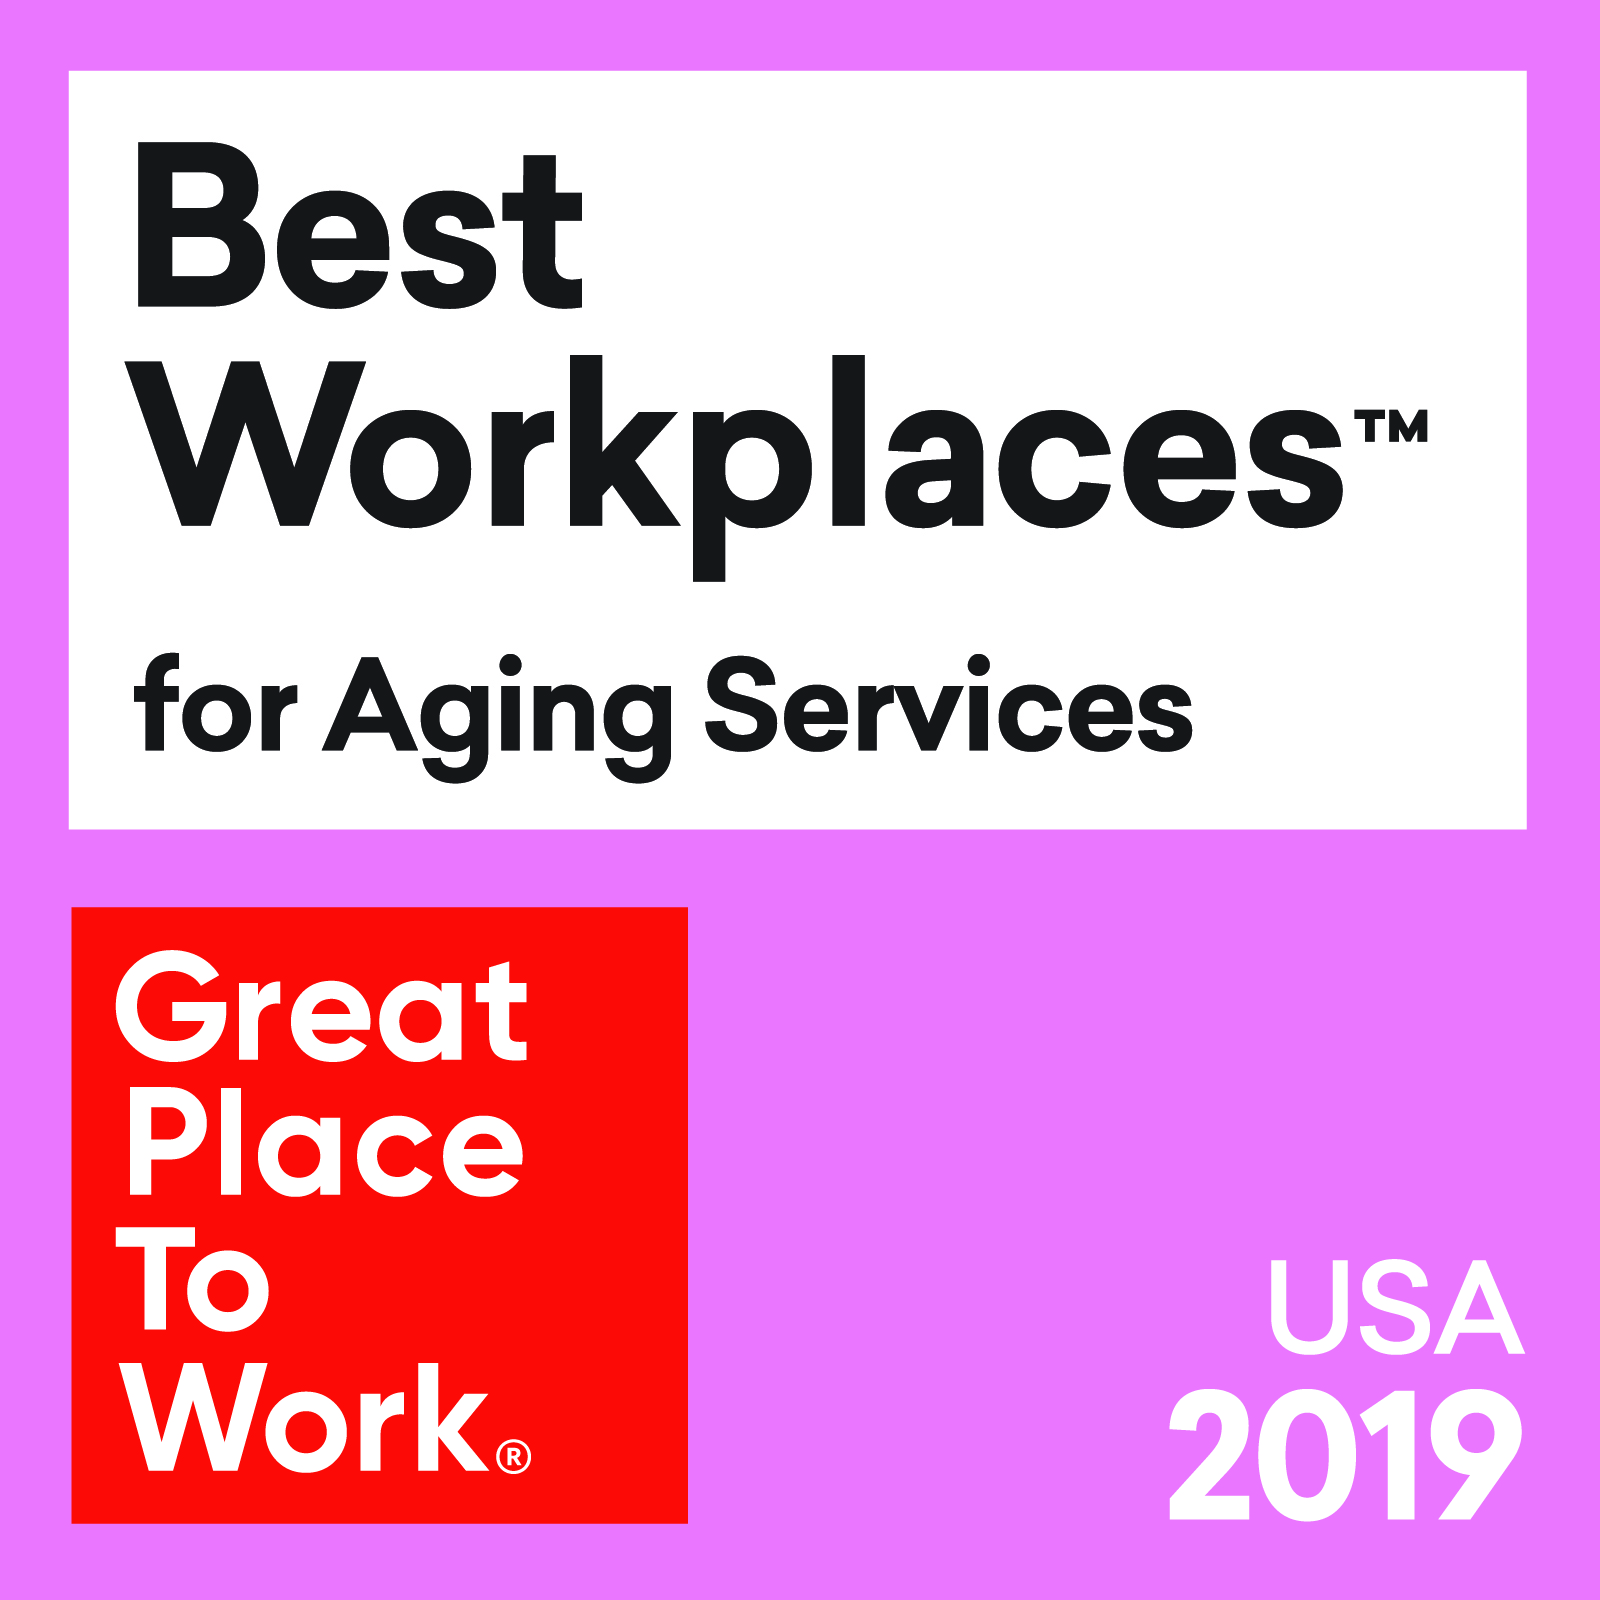 Sheridan In-Home Care Named One of the 2019 Best Workplaces for Aging Services by Great Place to Work® and FORTUNE